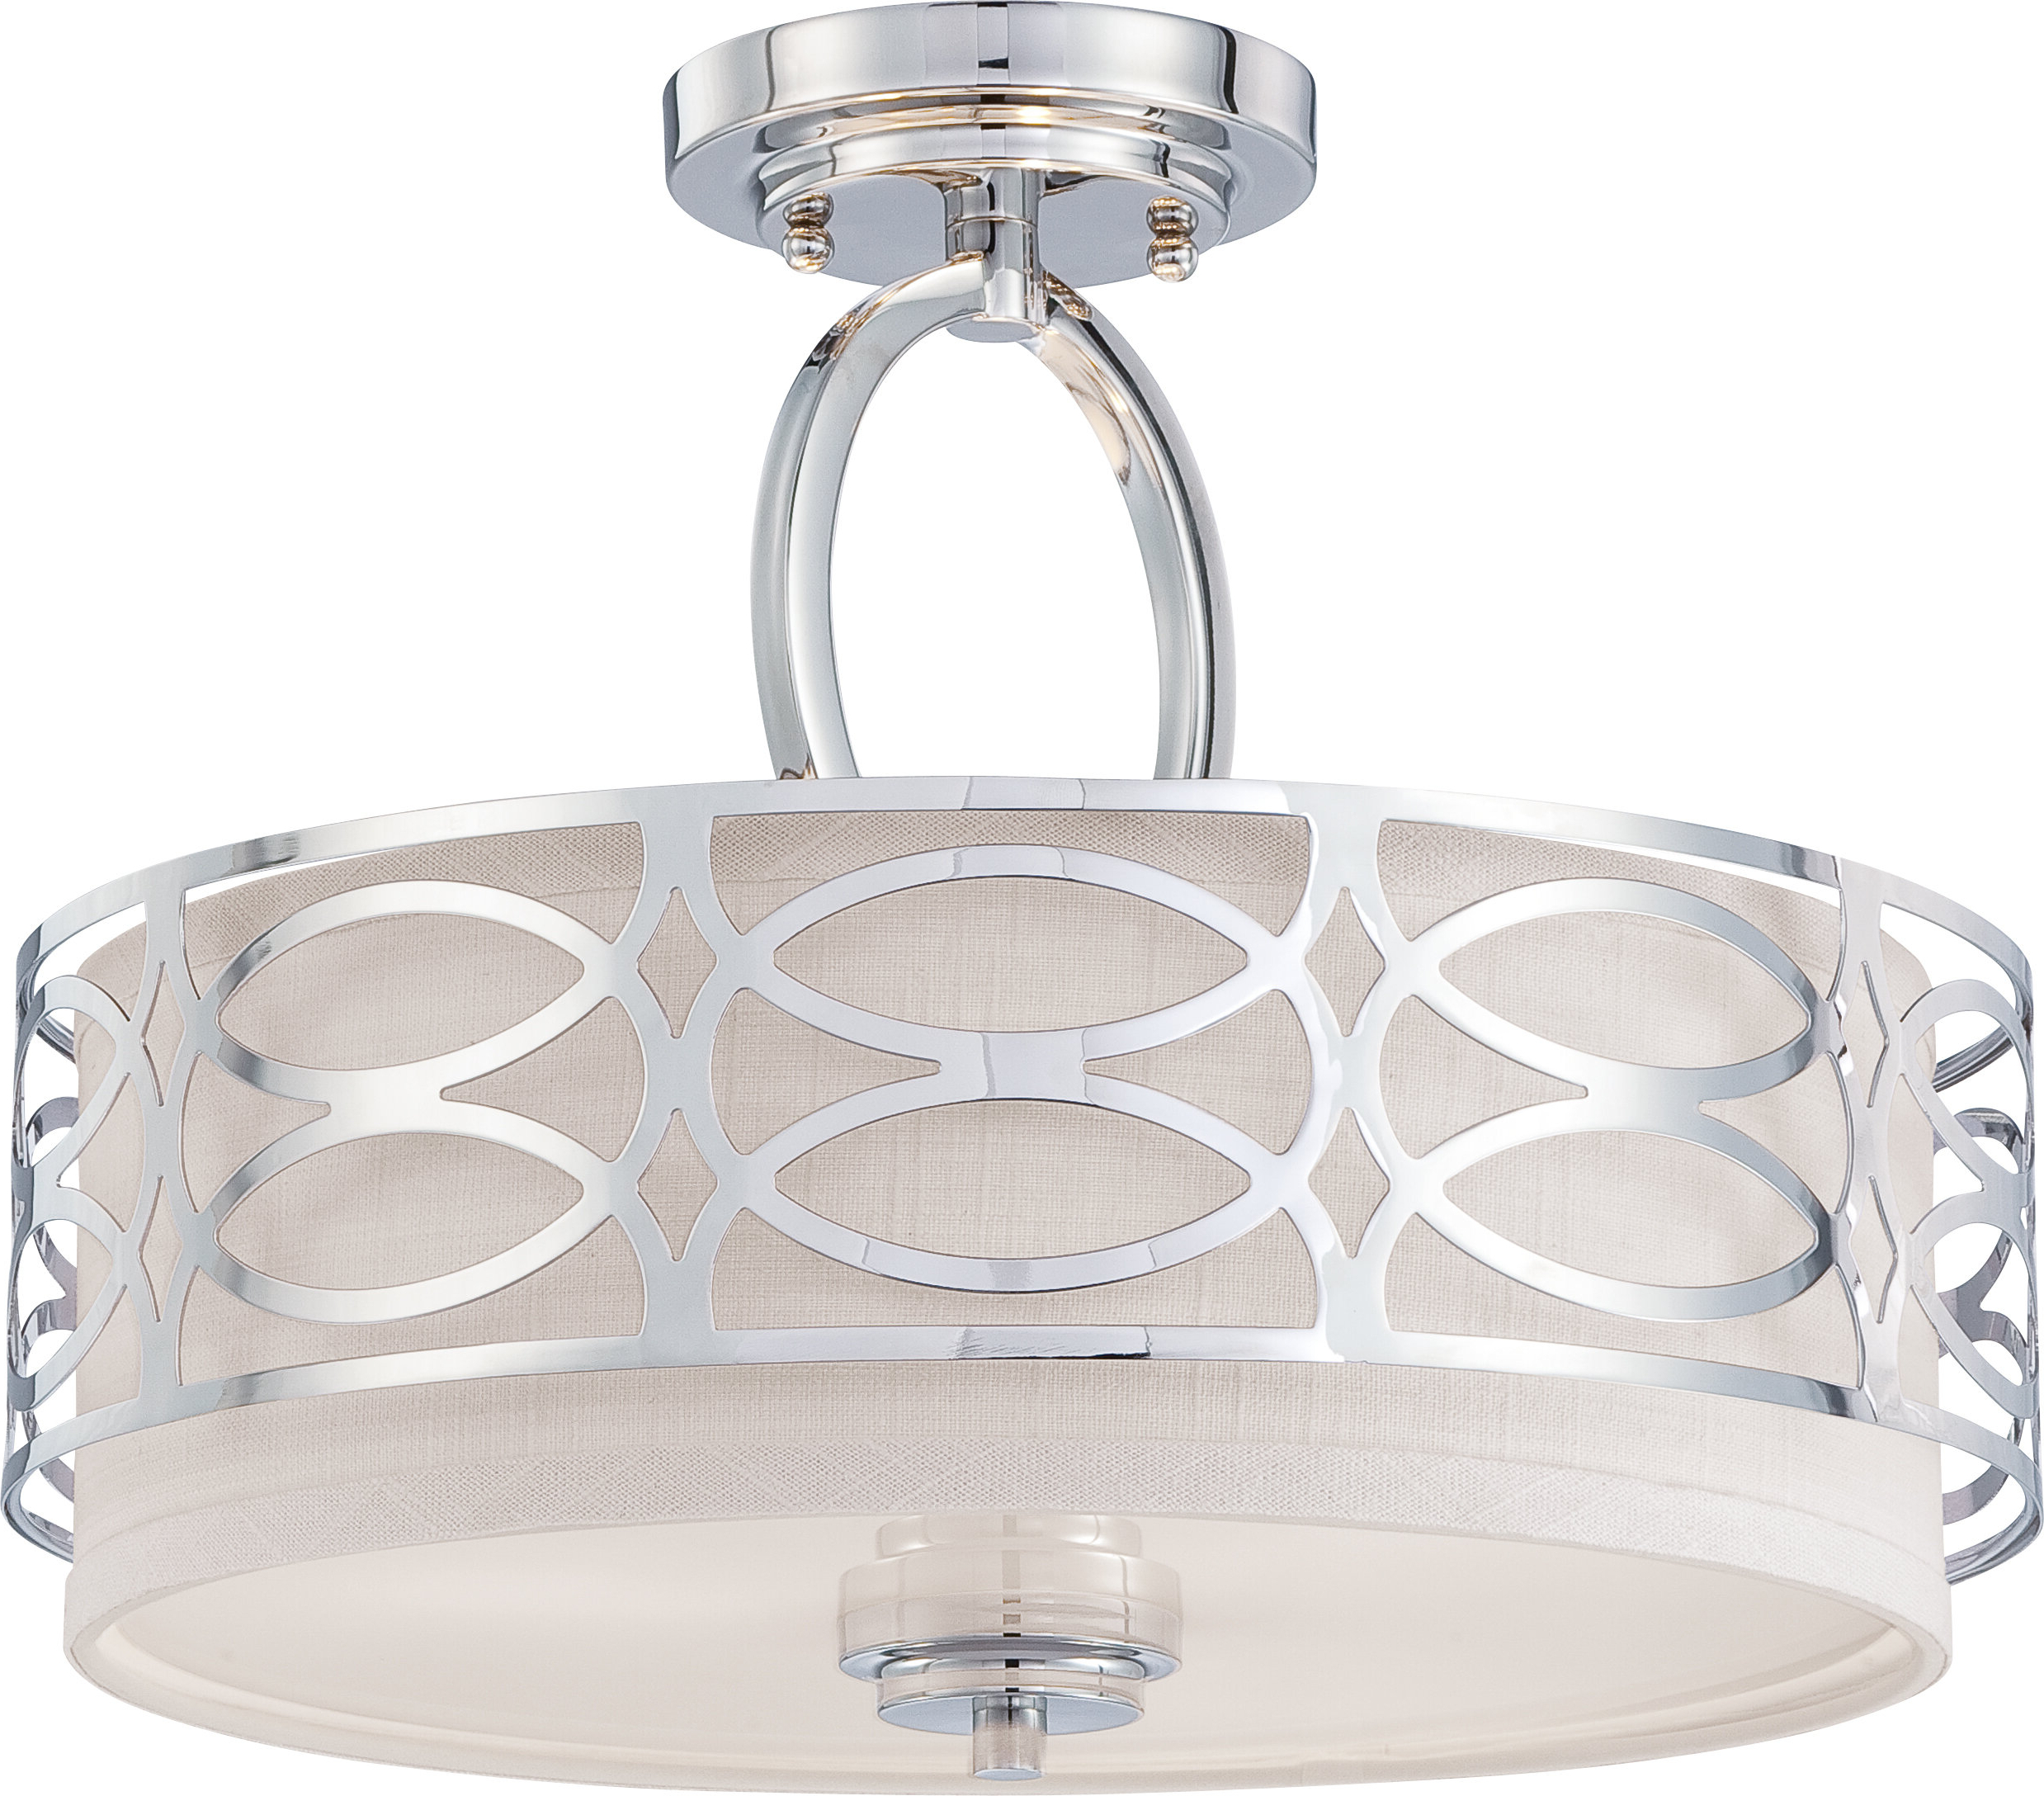 Helina 3 Light Semi Flush Mount With Regard To Most Up To Date Dirksen 3 Light Single Cylinder Chandeliers (View 9 of 20)